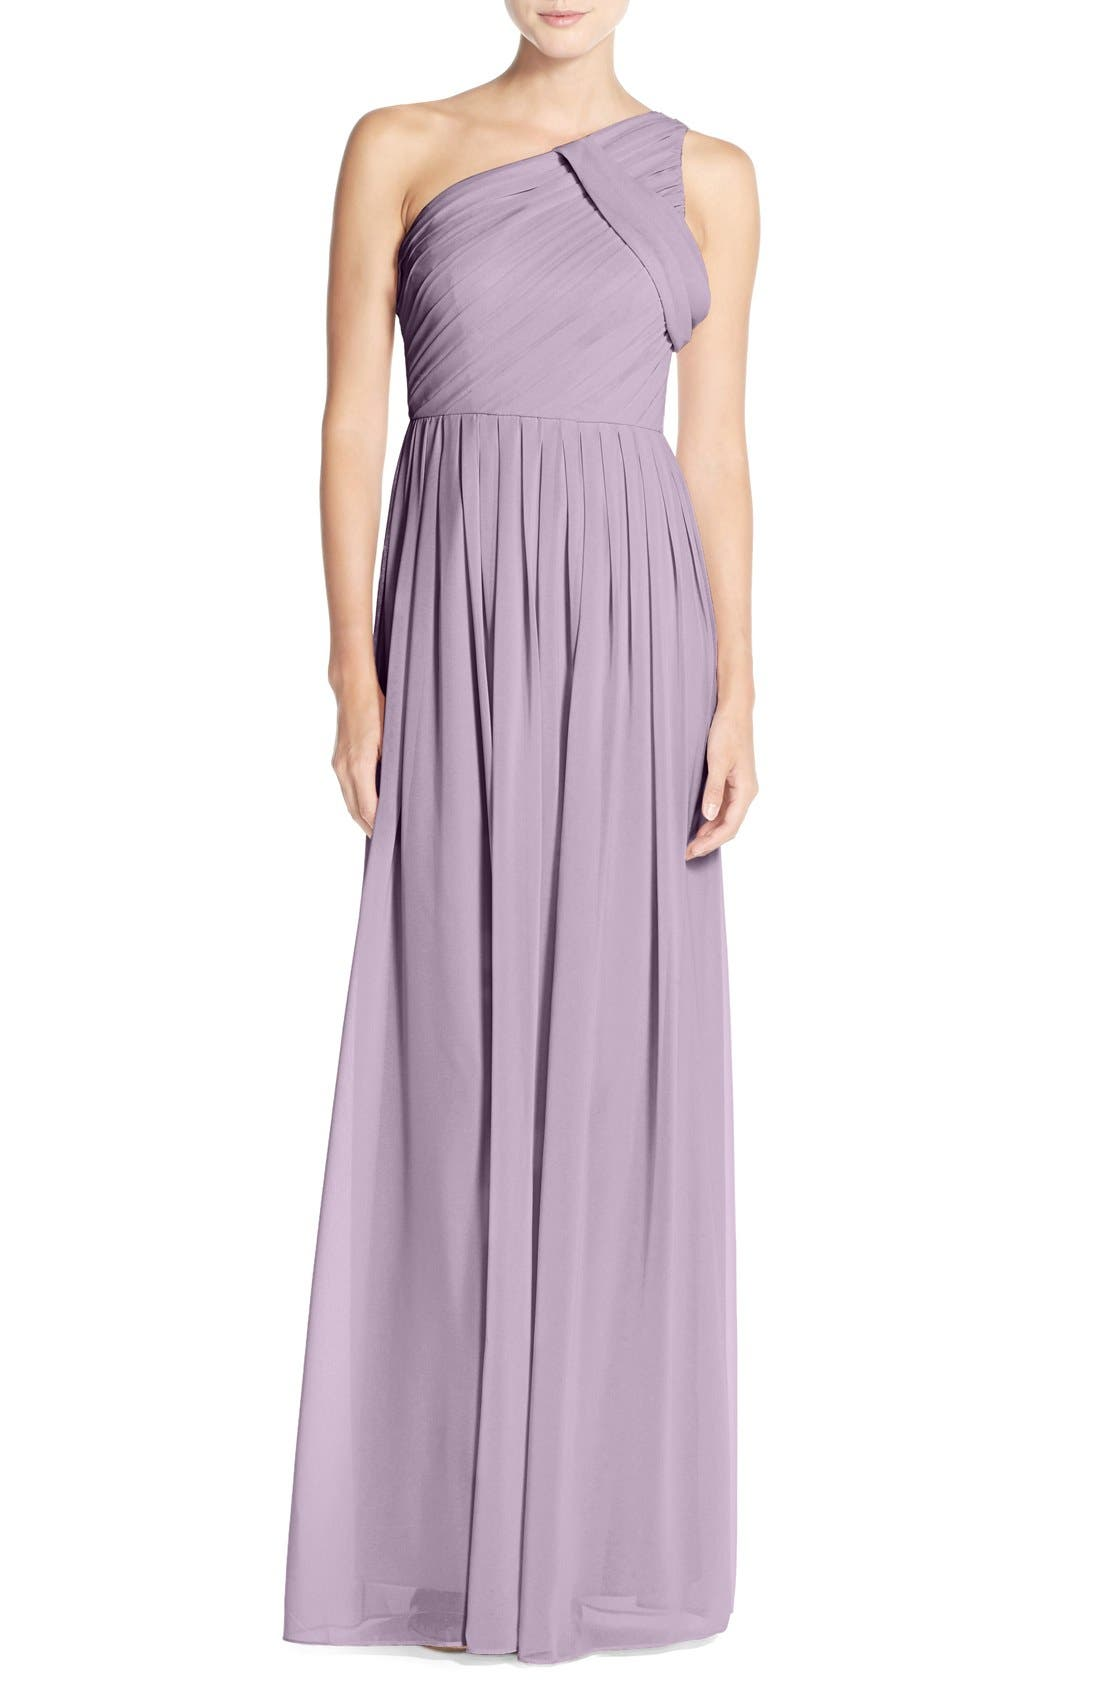 'Chloe' One-Shoulder Pleat Chiffon Gown,                         Main,                         color,